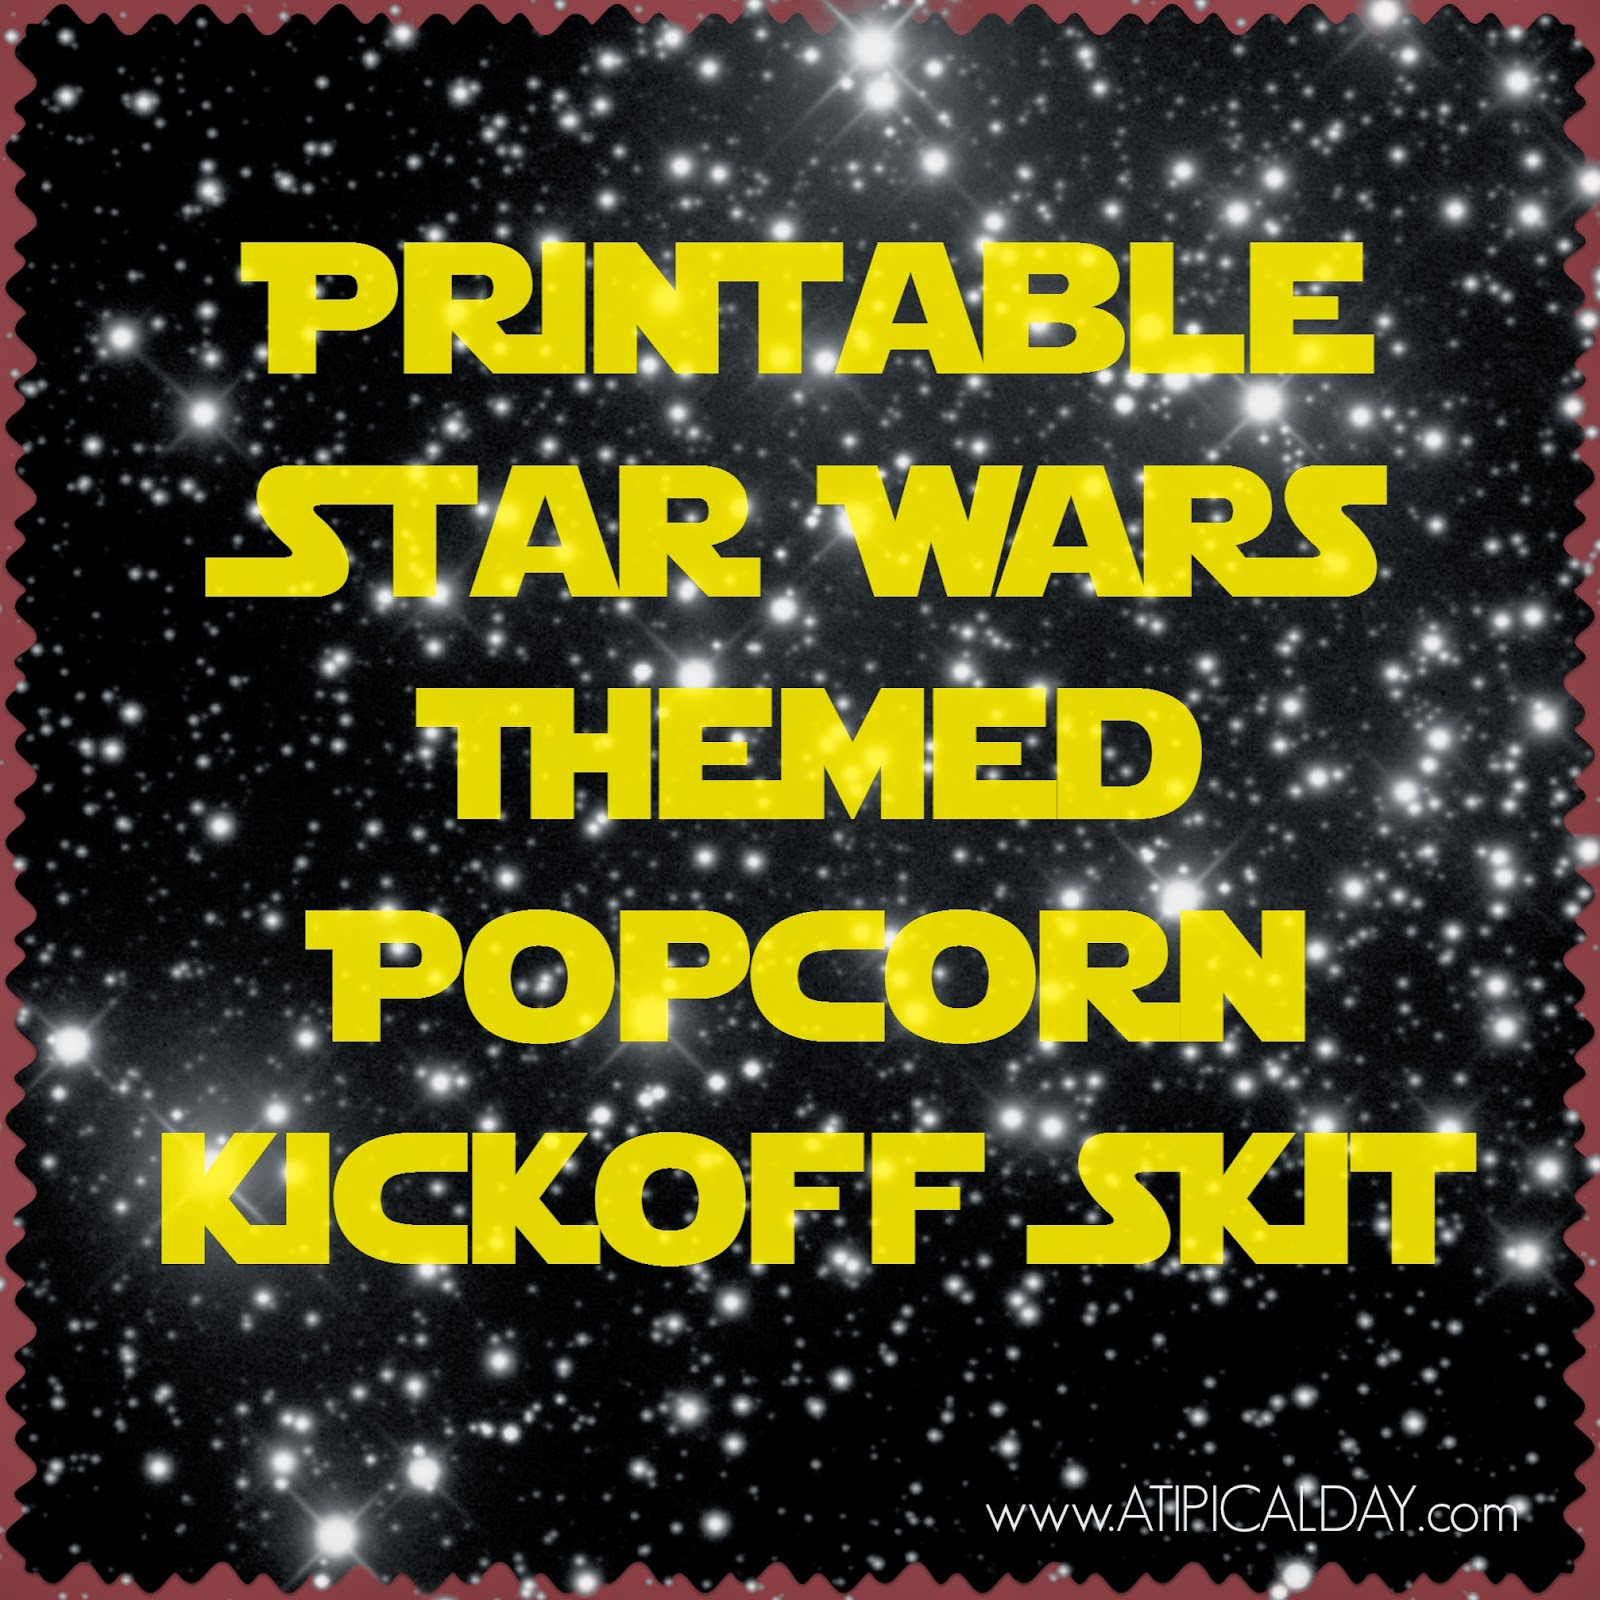 Printable Star Wars themed skit for a popcorn kickoff - @ATIPicalDay #popcorn #cubscouts #BSA #trailsend #popcornkickoff #starwars